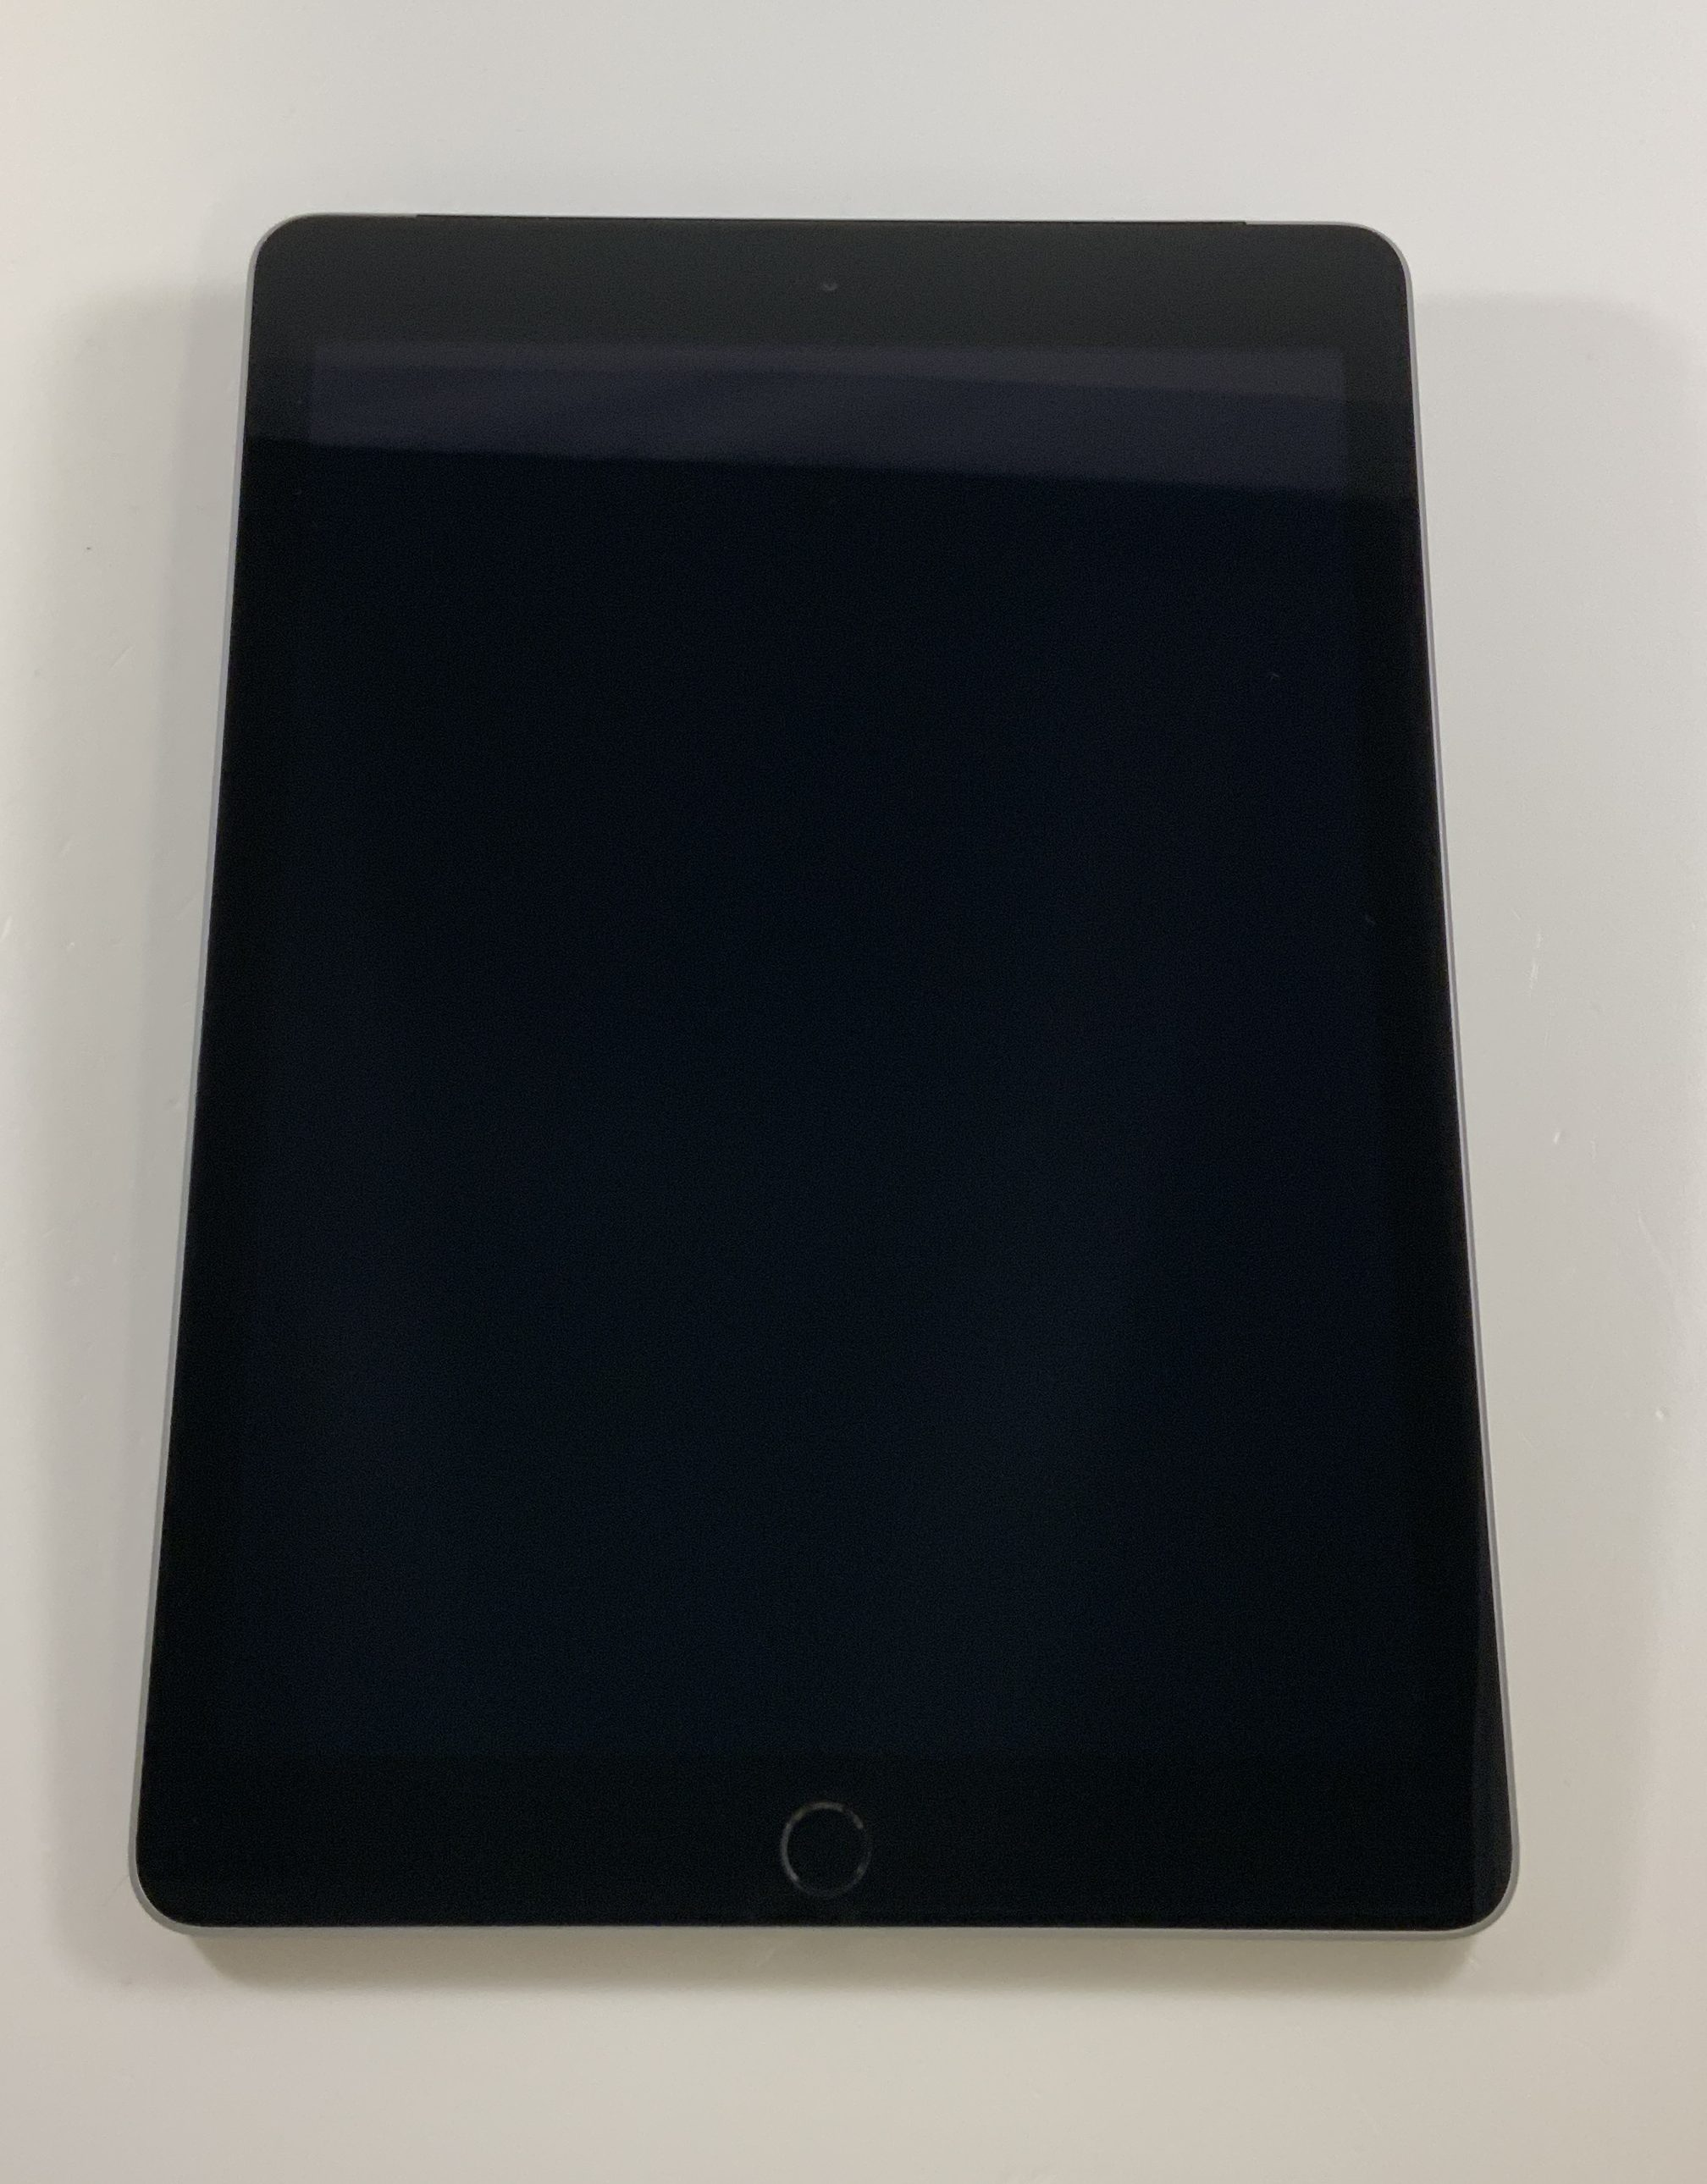 iPad 5 Wi-Fi + Cellular 128GB, 128GB, Space Gray, Kuva 1